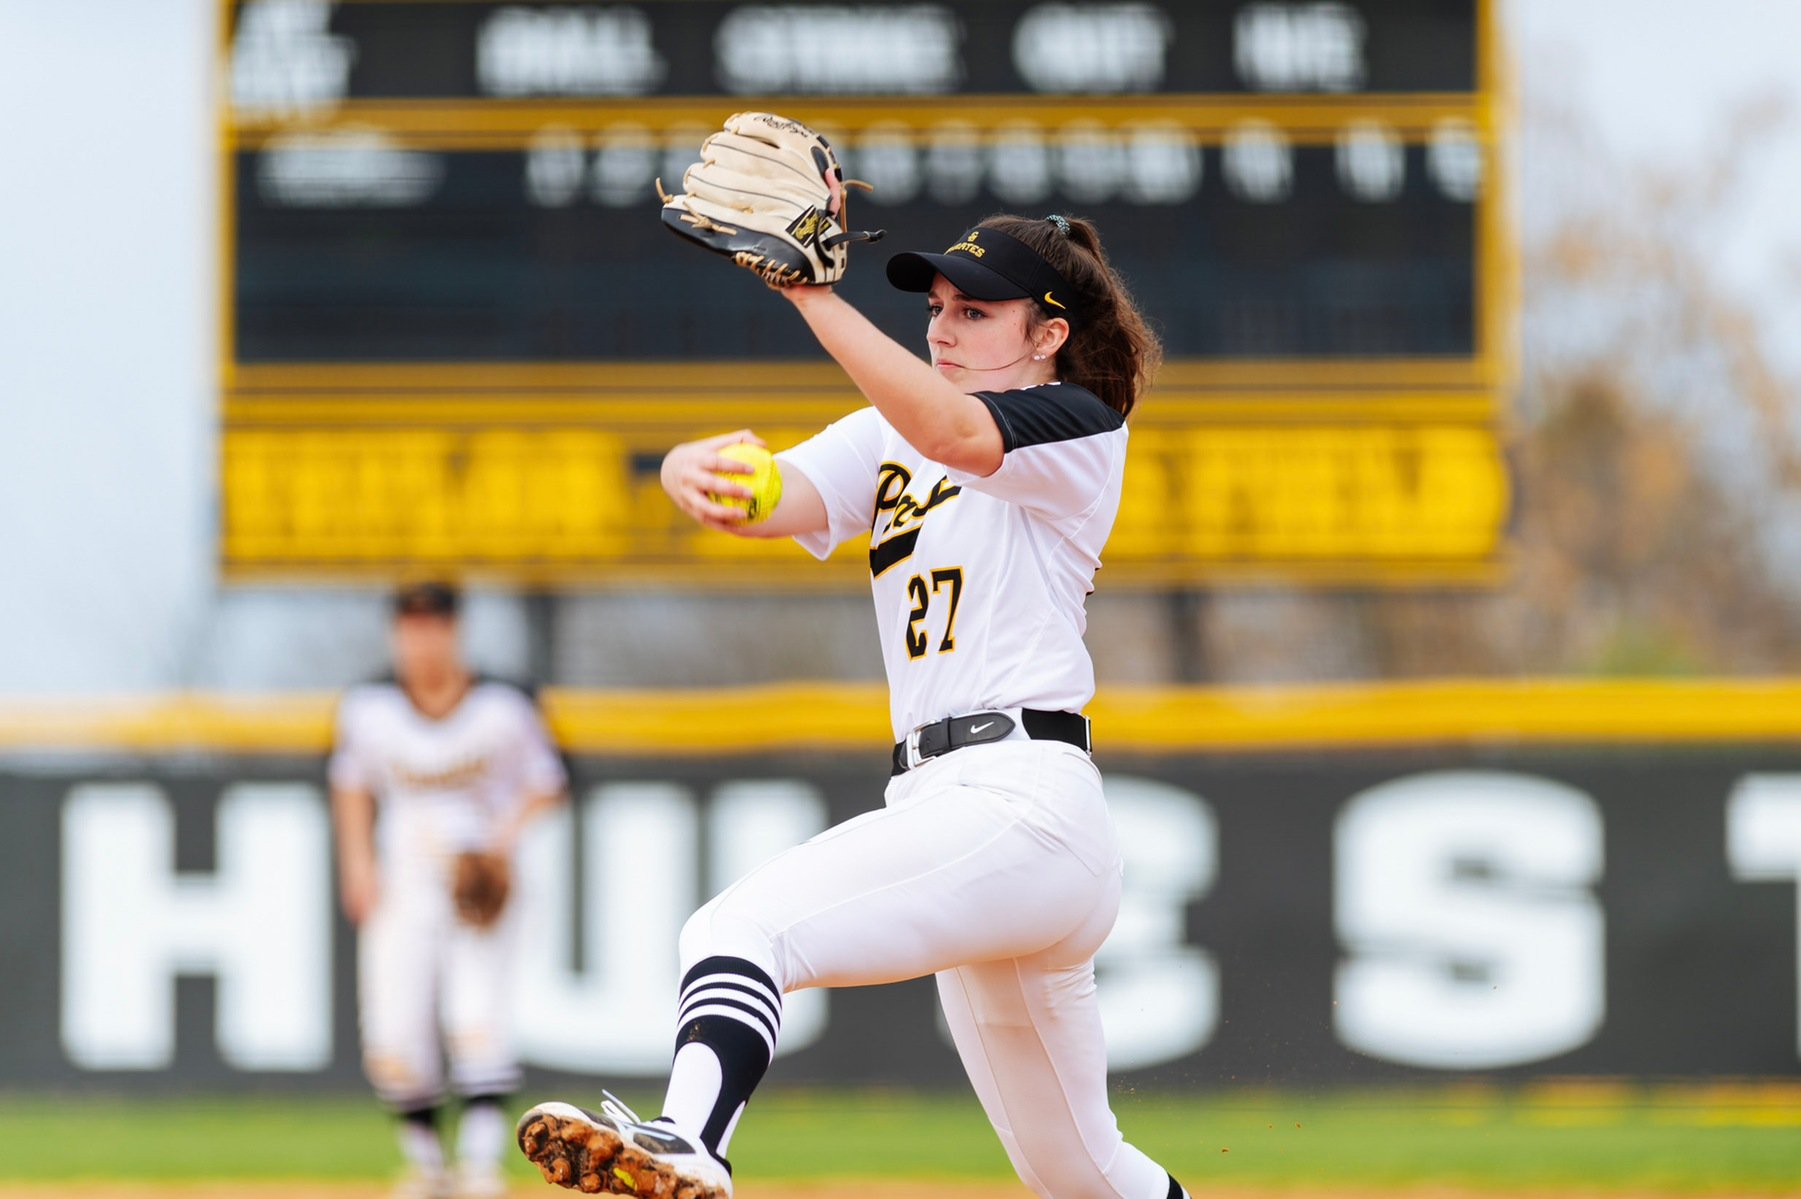 Softball Shuts Out Dallas to Win Game 1